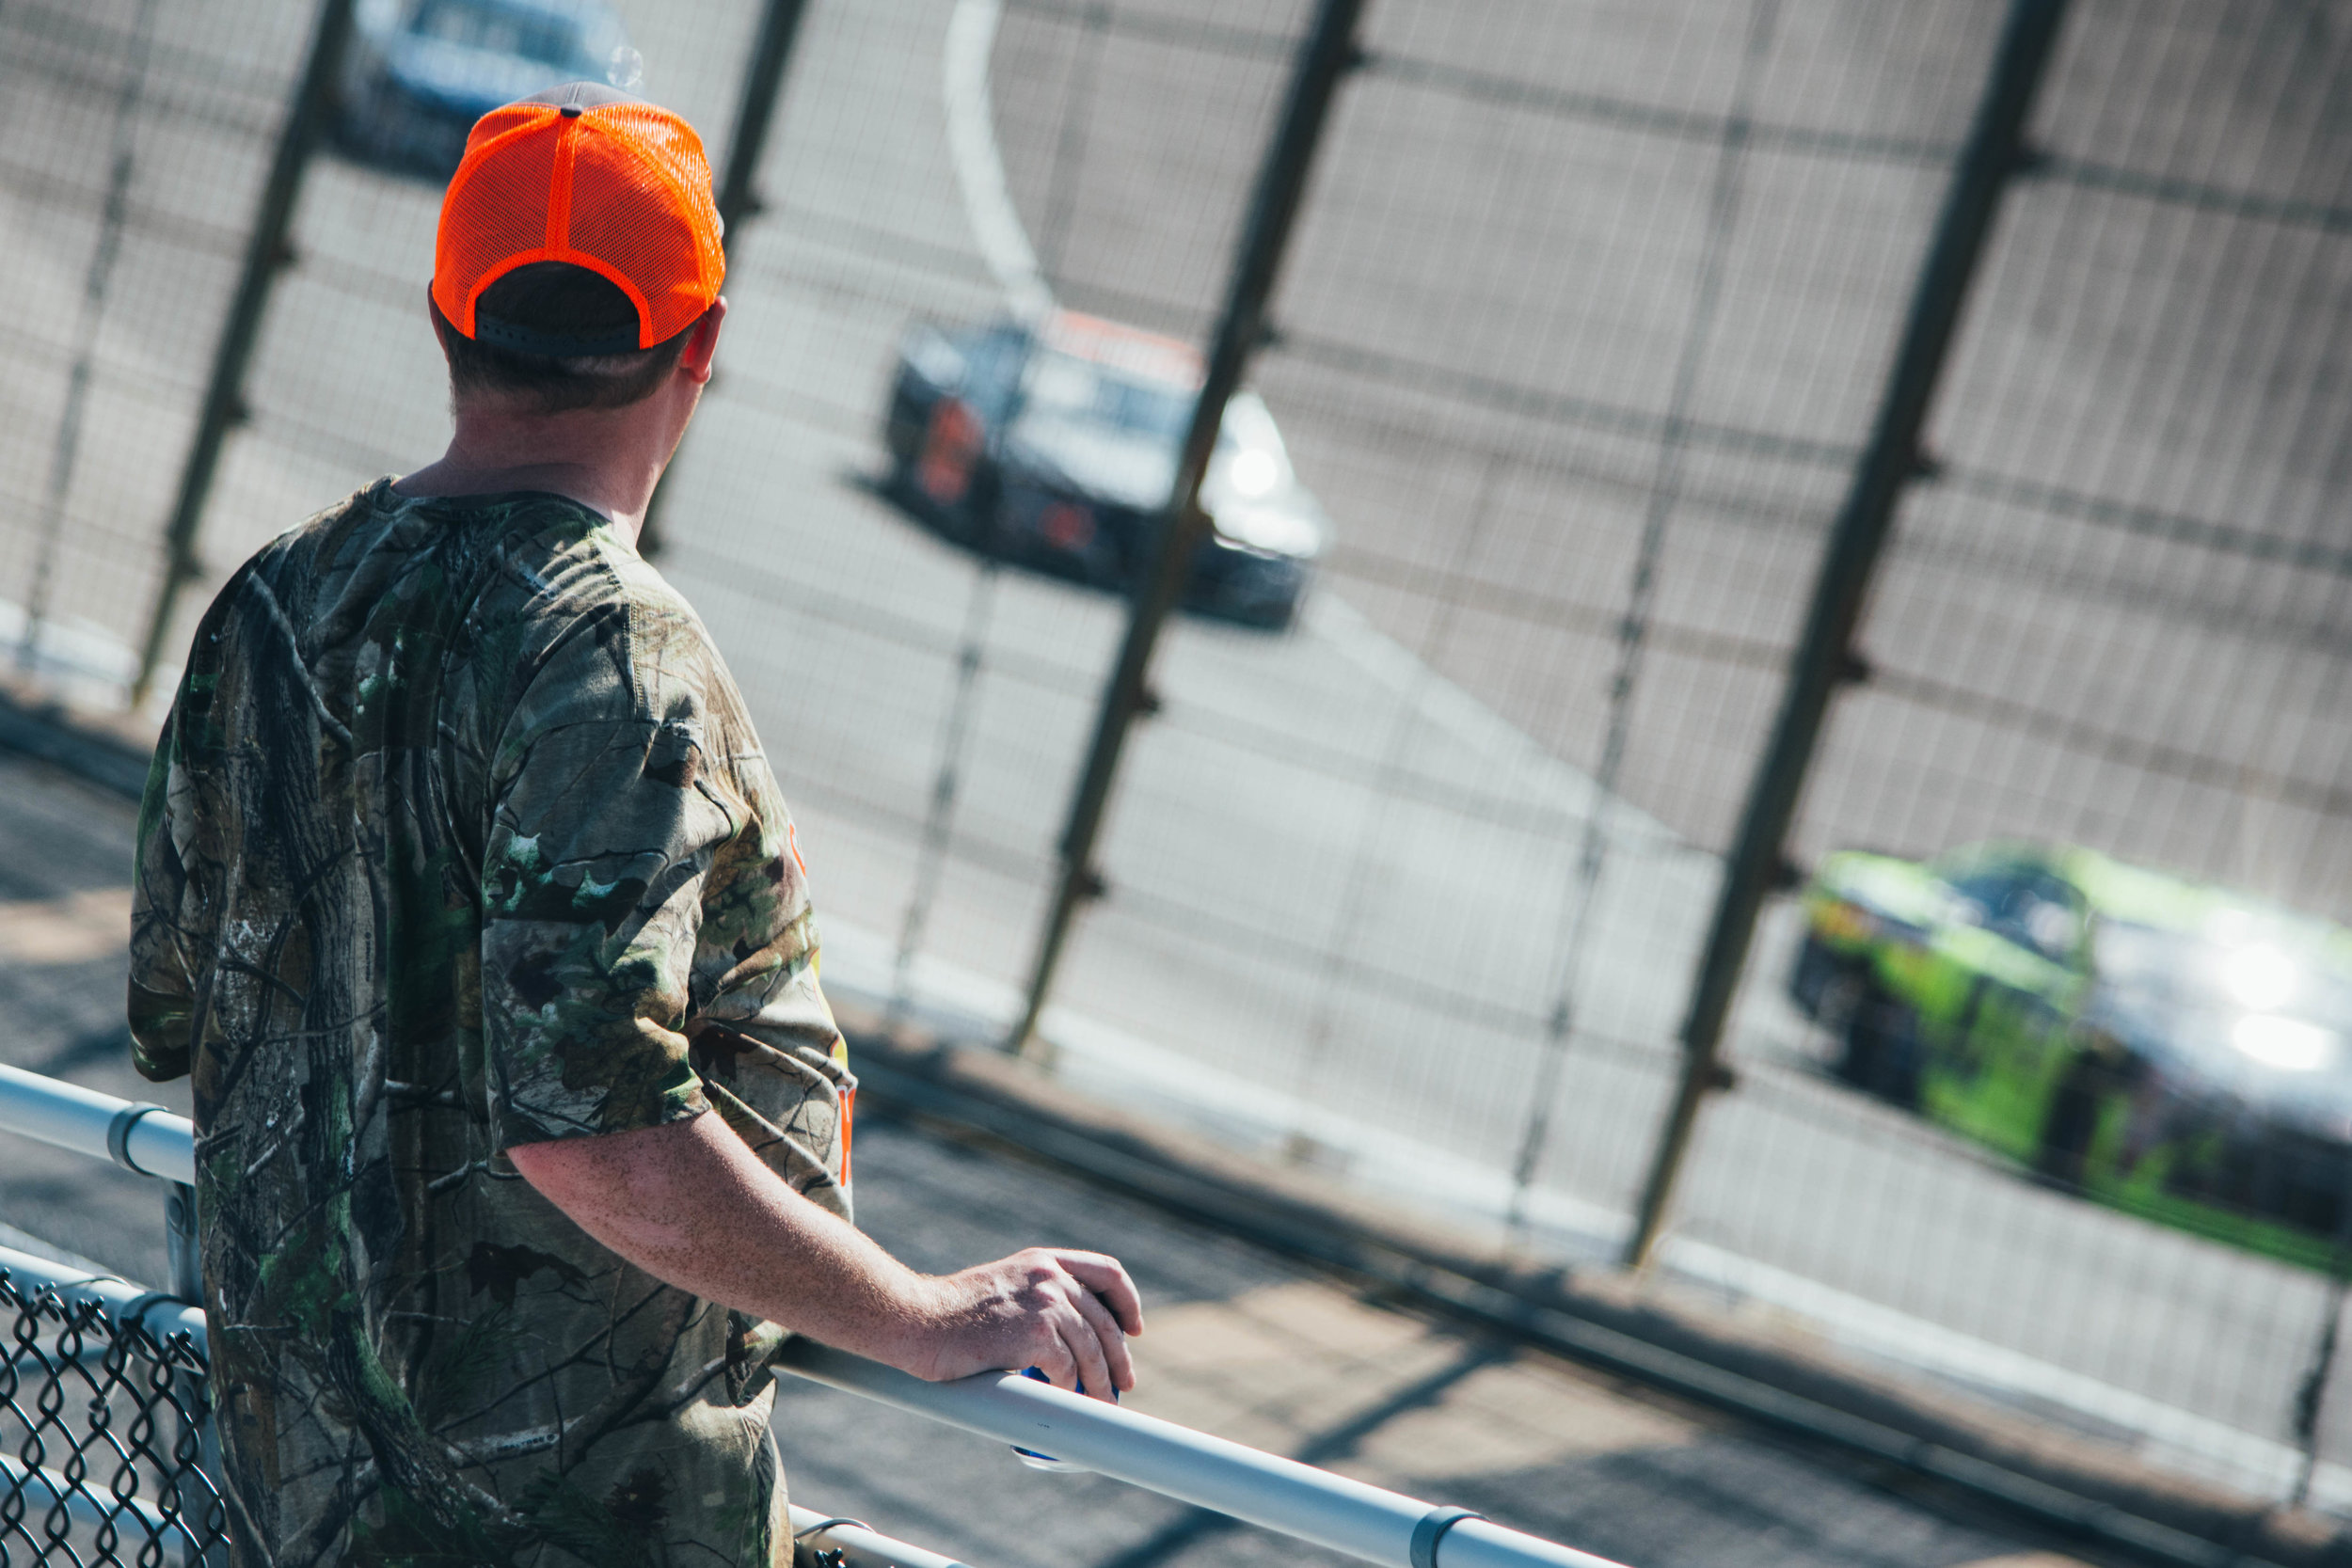 NASCAR fan watches as the cars race by for the first lap.